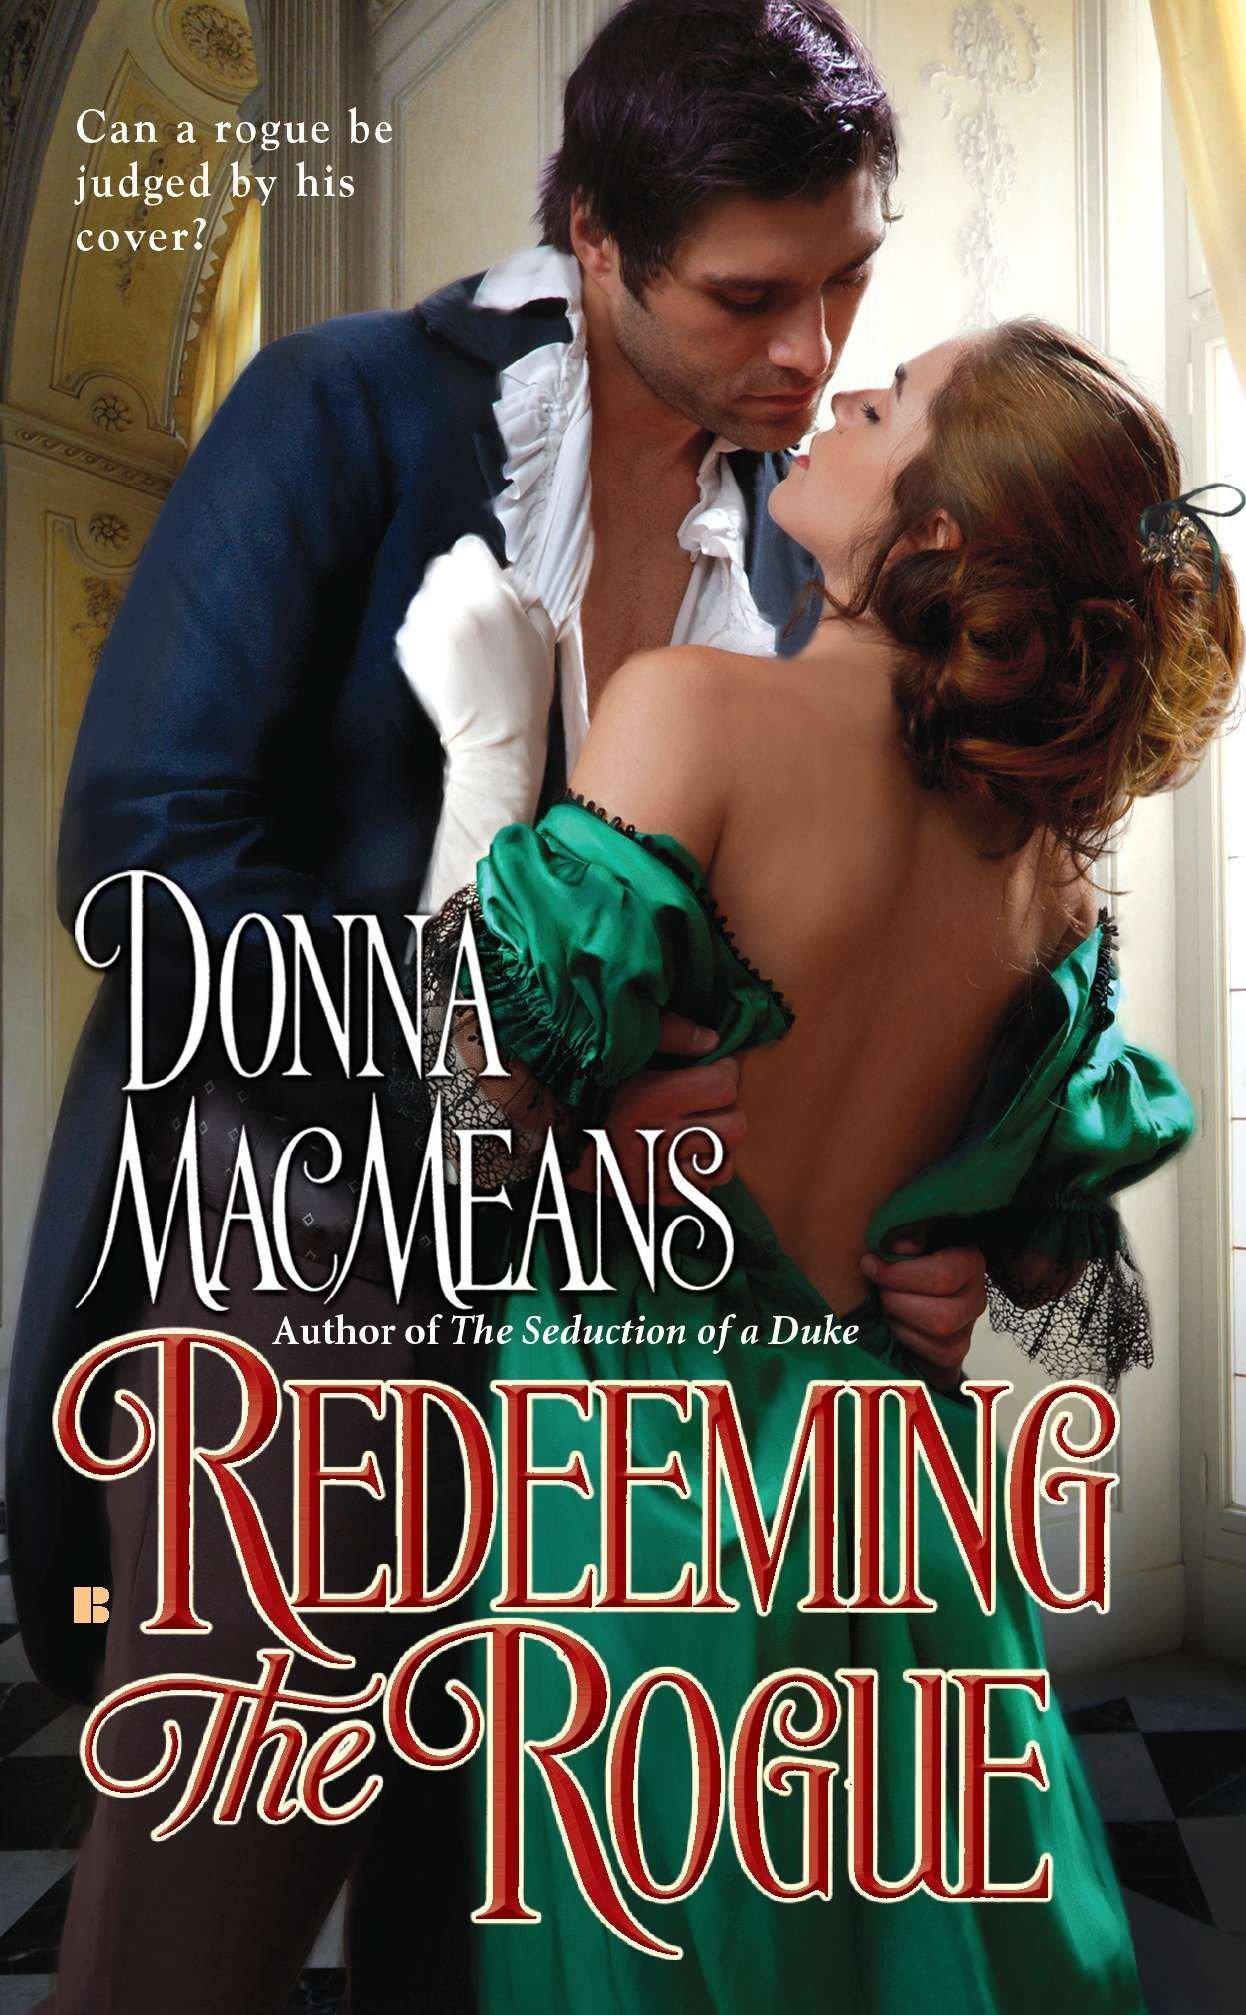 redeeming the rogue macmeans donna